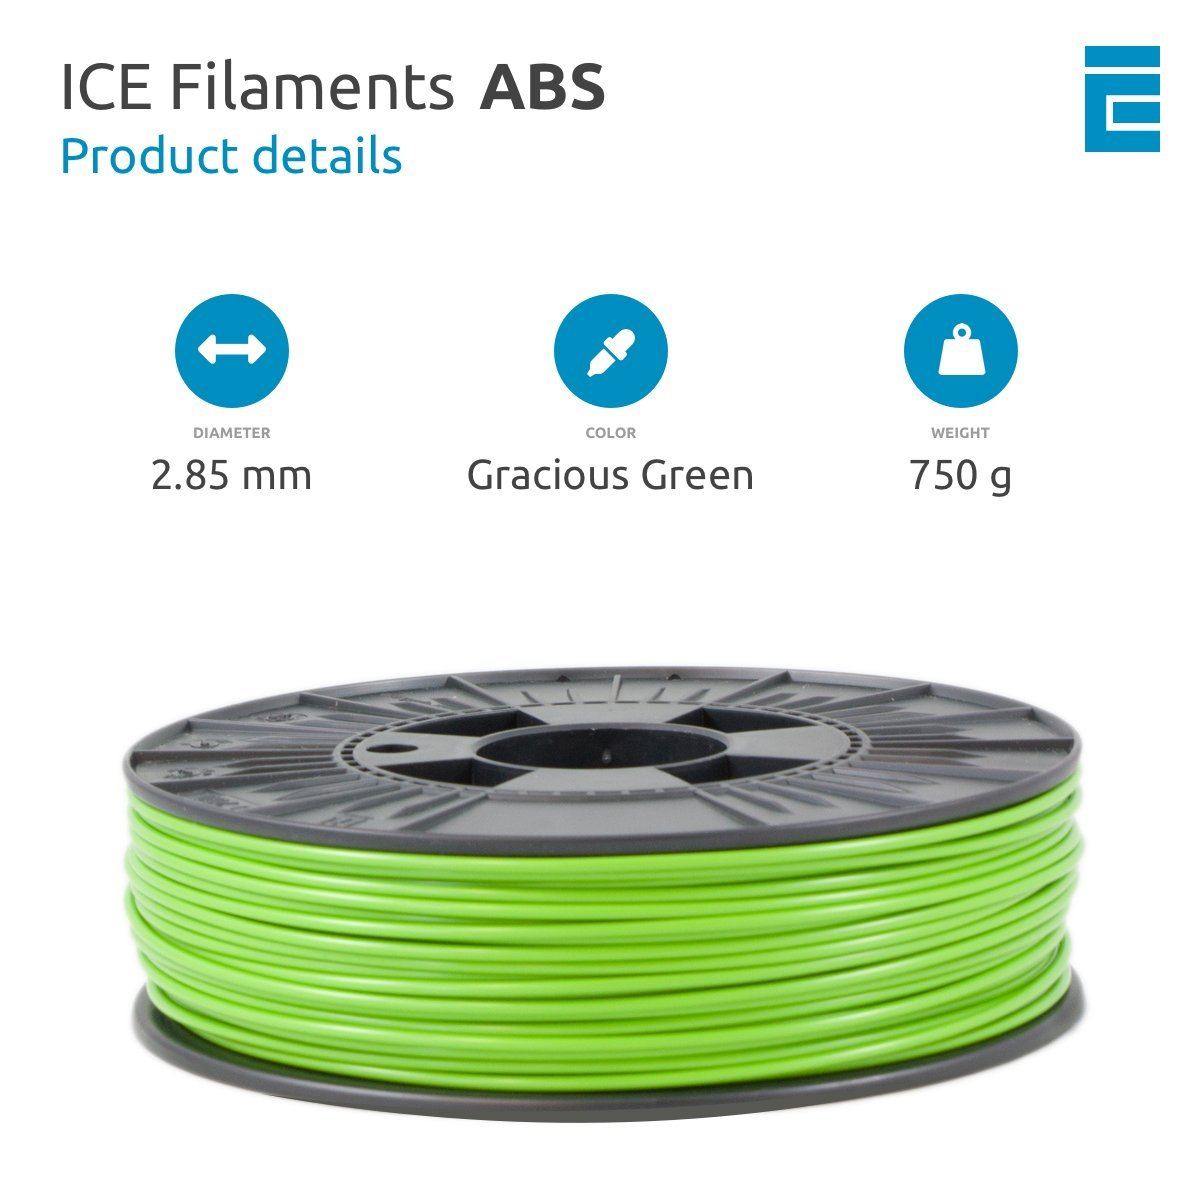 0.75 kg Barbaric Brown ICE Filaments ICEFIL1ABS079 filamento ABS,1.75mm